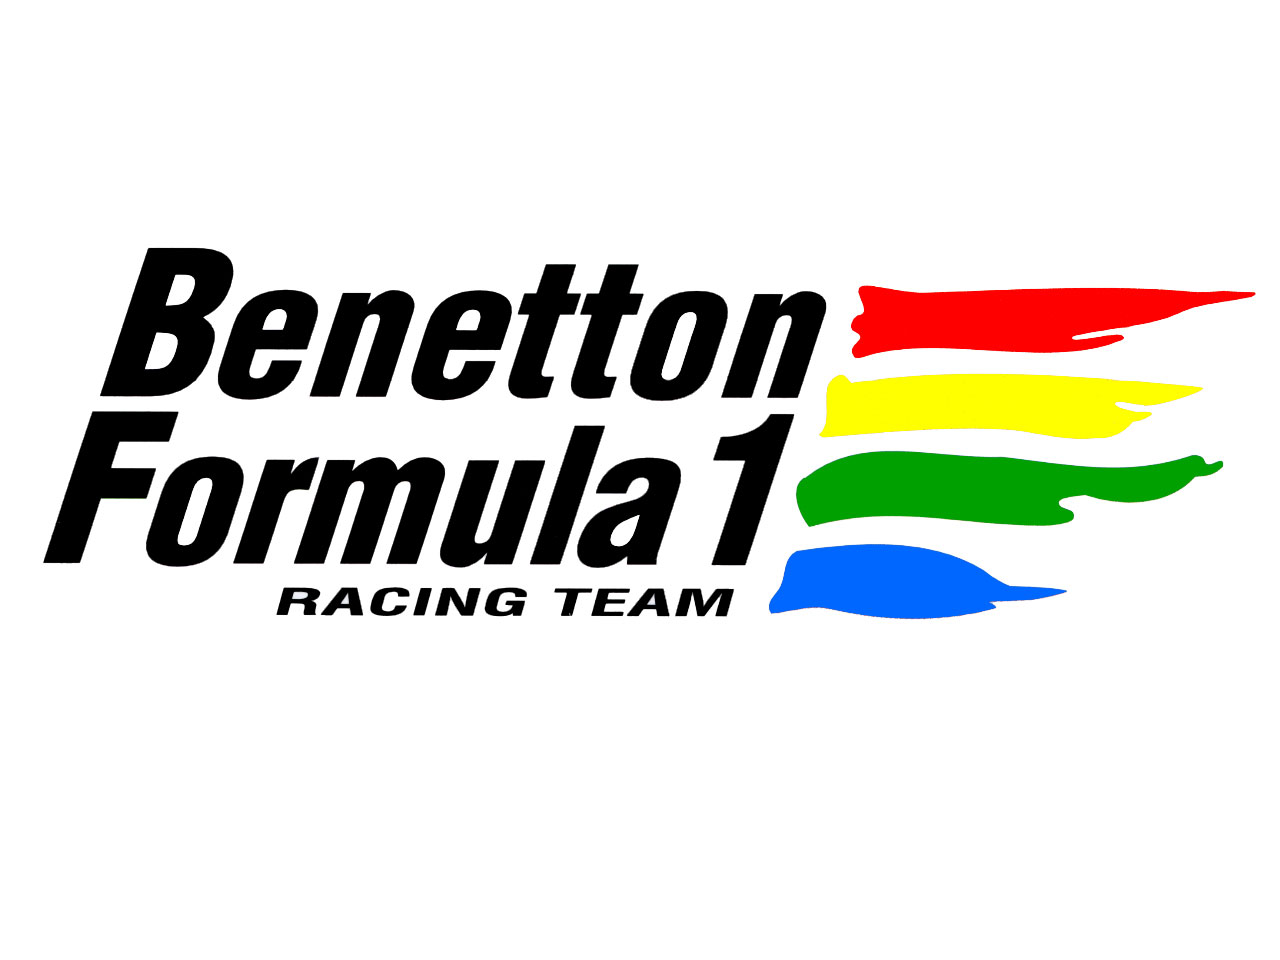 Benetton F1 logo Wallpaper